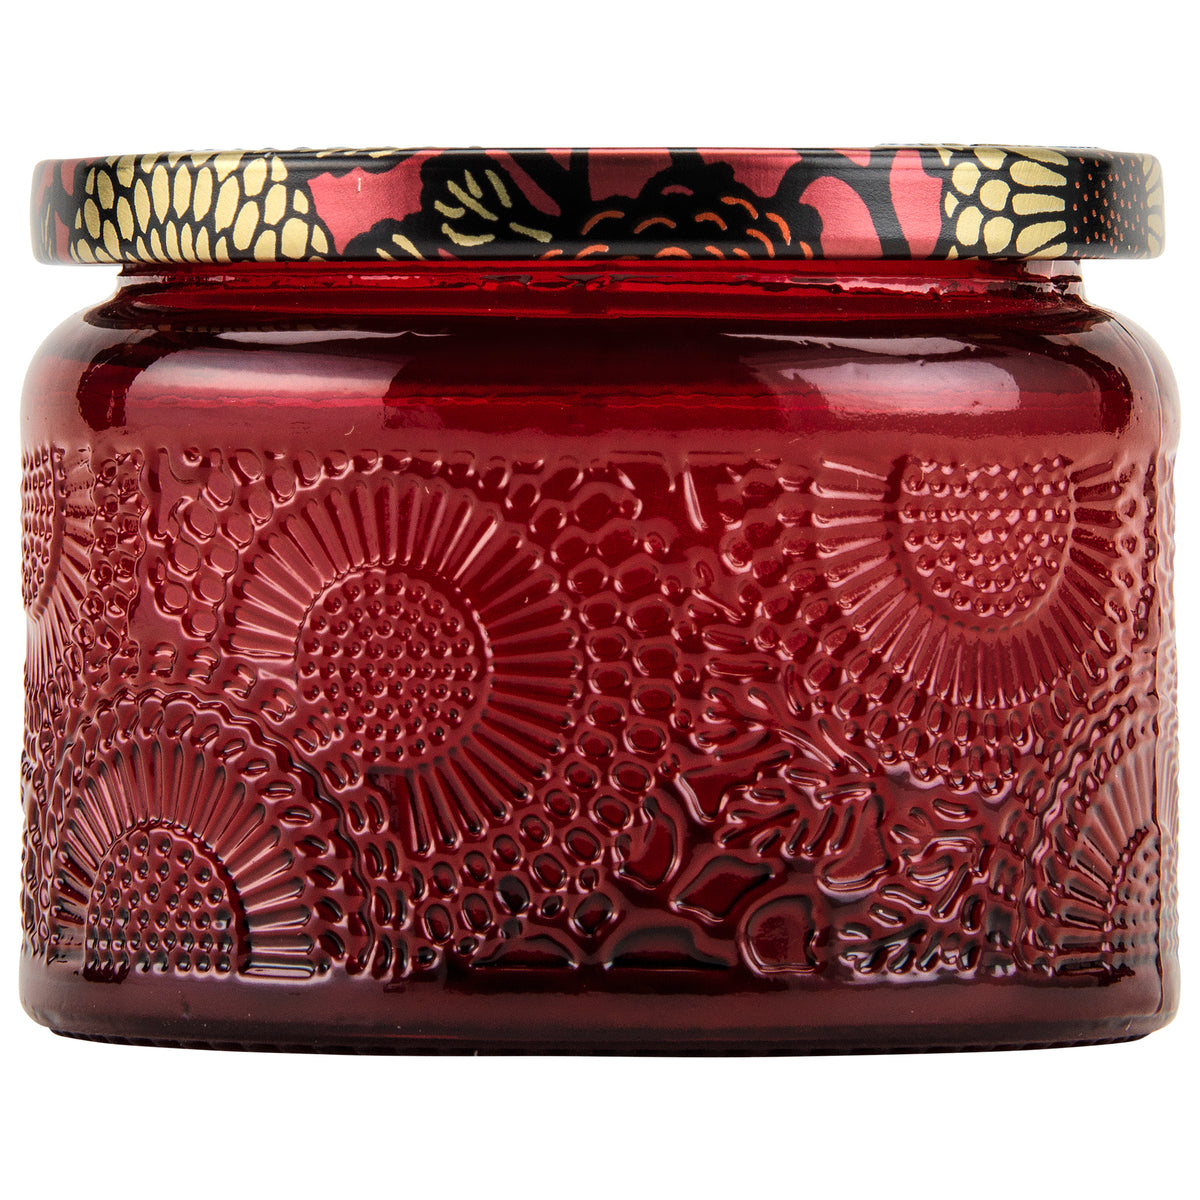 Goji Tarocco Orange - Petite Jar Candle - 1